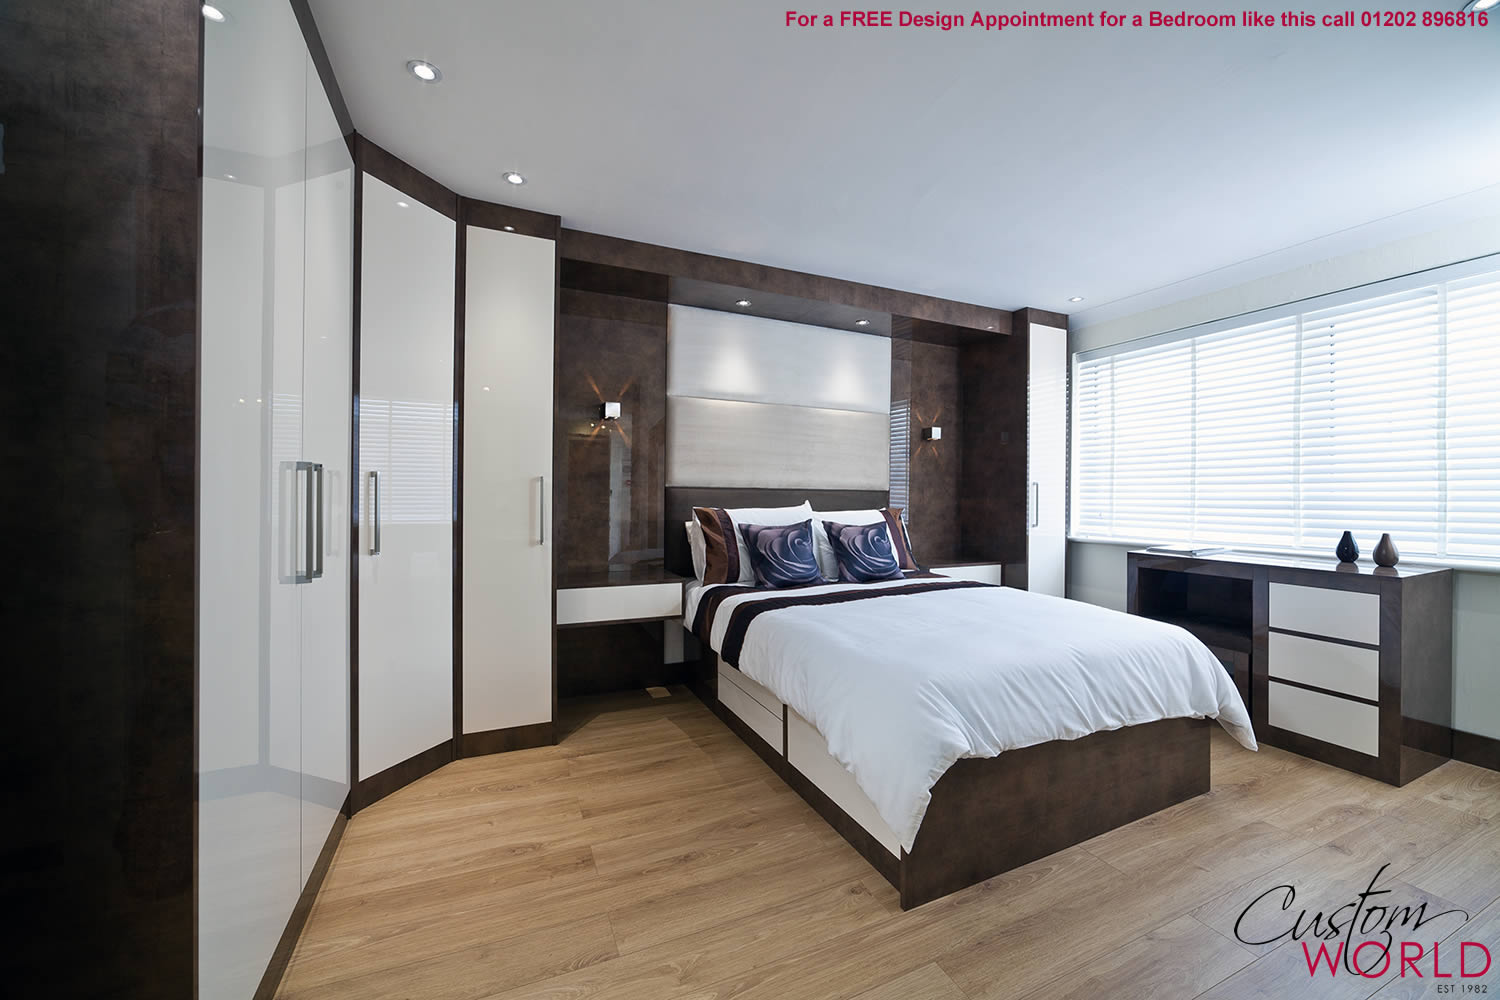 Cabin Bedroom Fitted Furniture: Fitted Furniture Poole Dorset